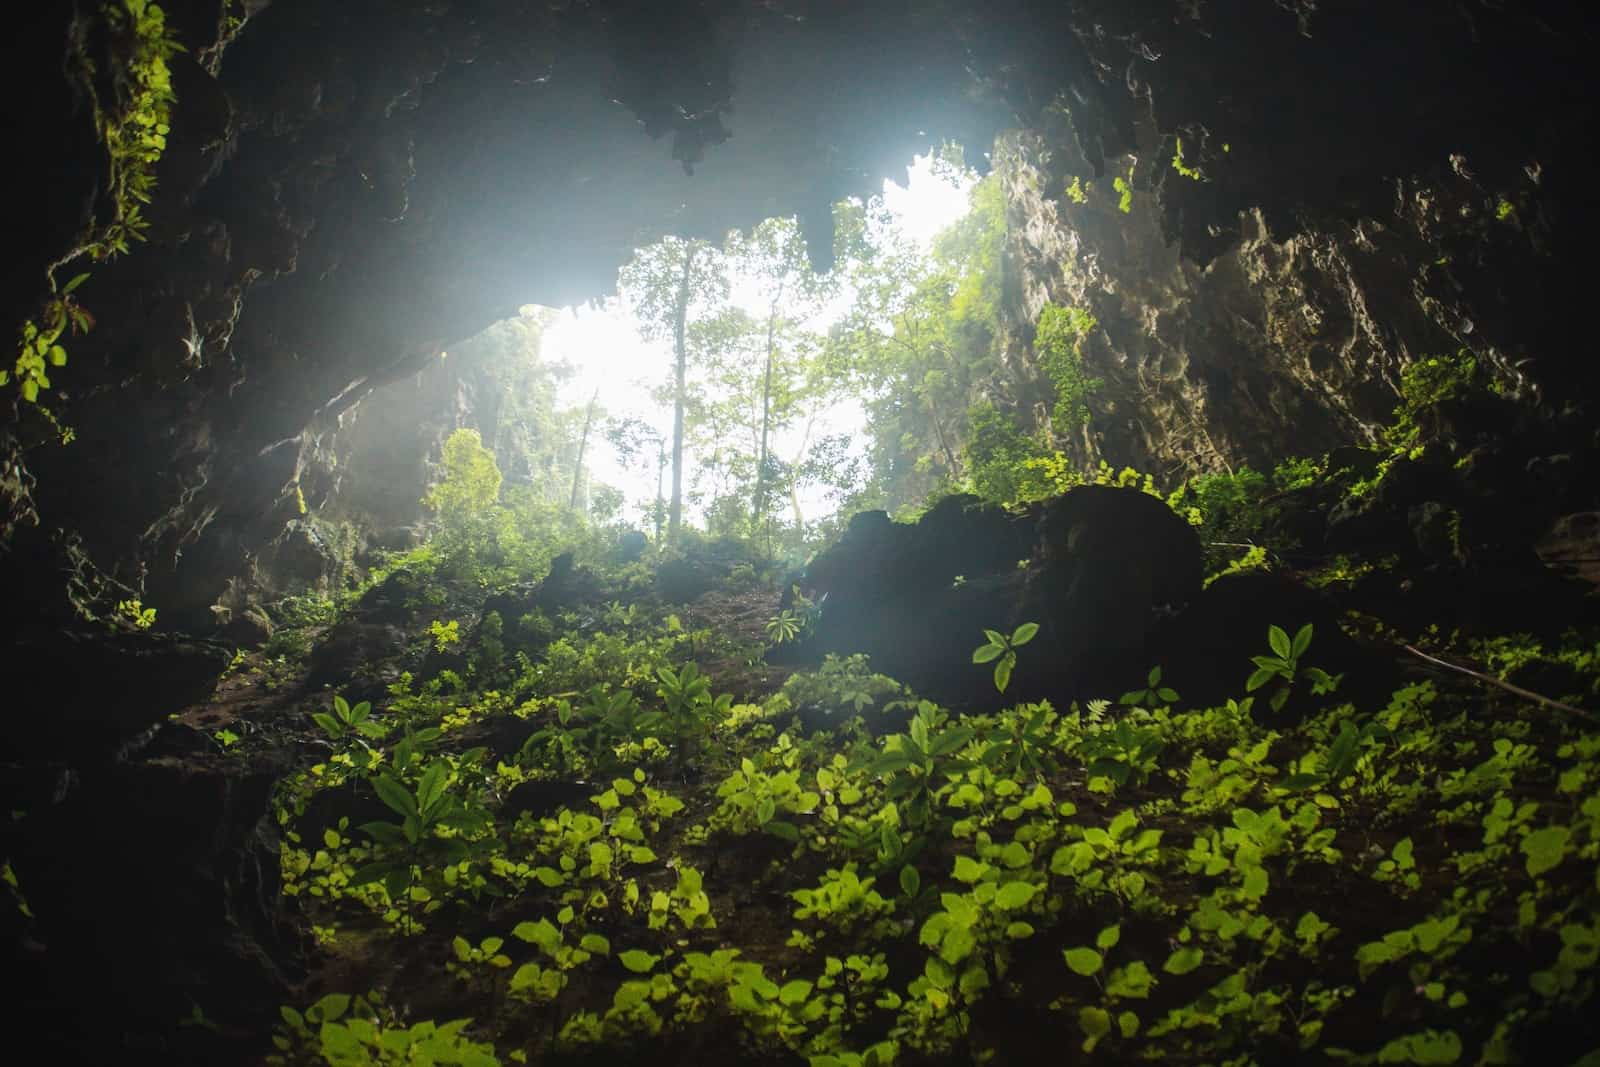 The mouth of the Tham Luang Nang Non cave in the Chiang Rai Province of Thailand, the site of the Thailand cave rescue; there is rock covered in foliage and trees outside the cave mouth.